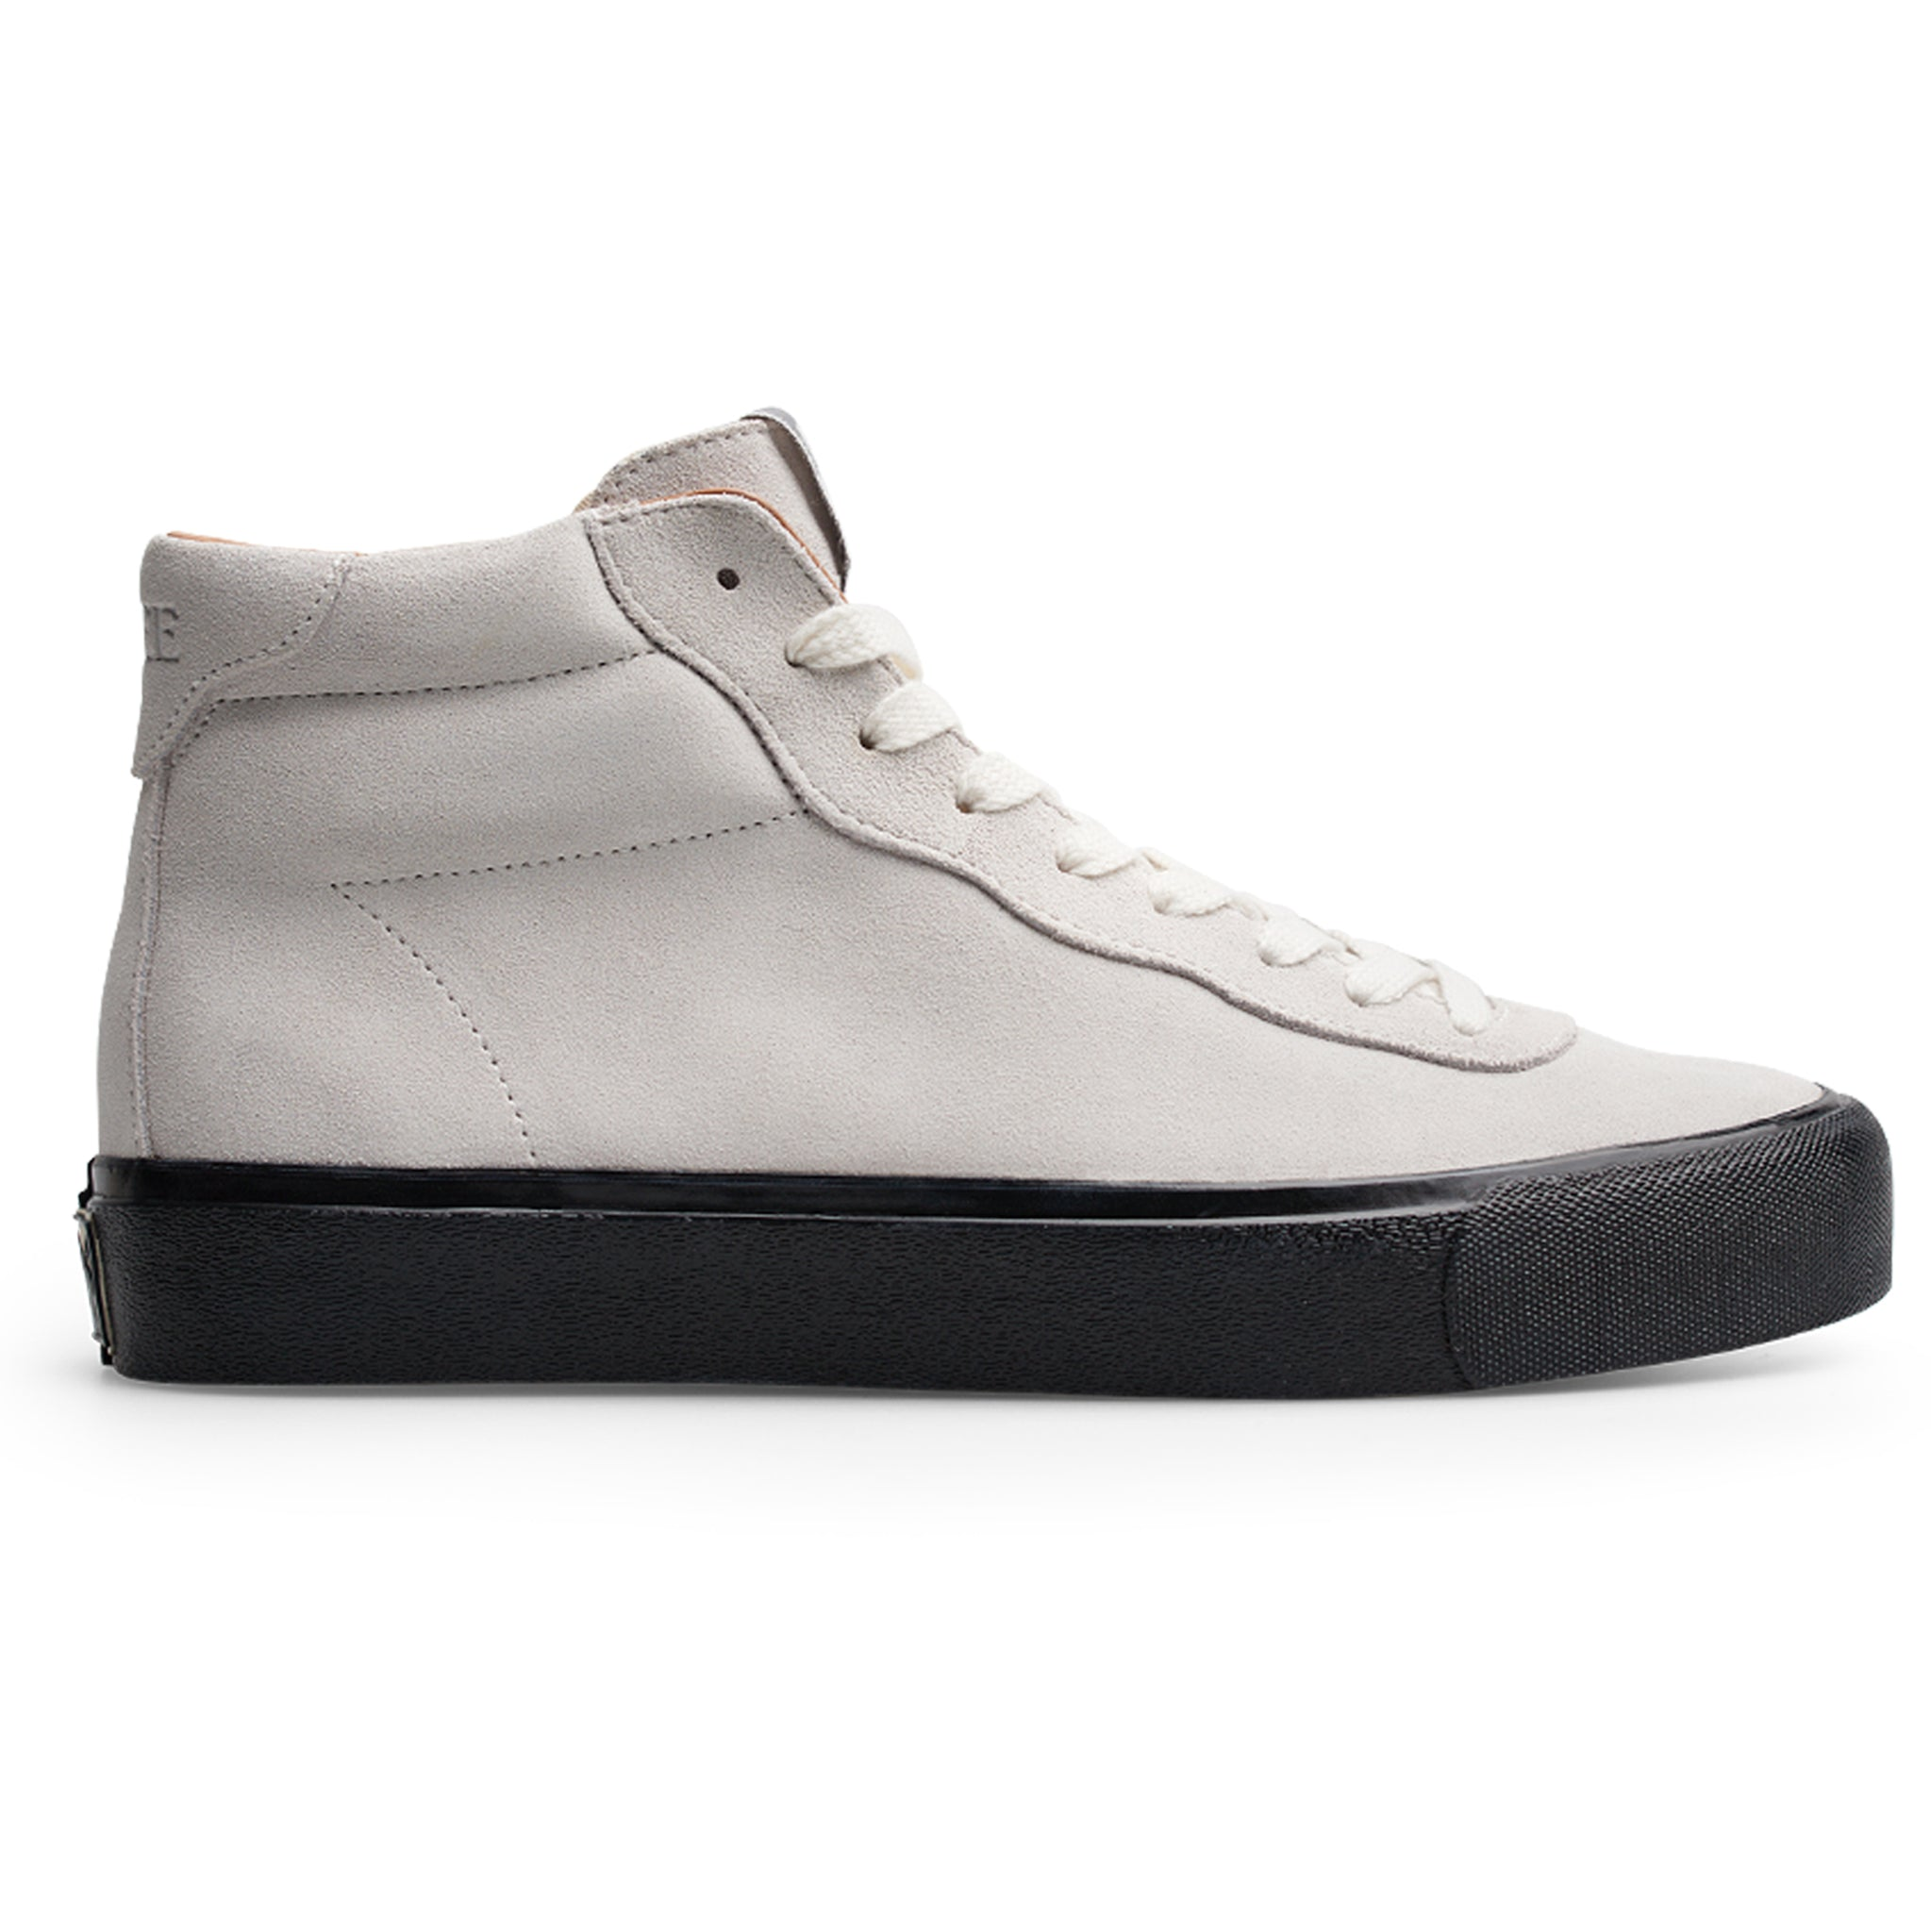 LAST RESORT AB - VM001 HI - WHITE/BLACK